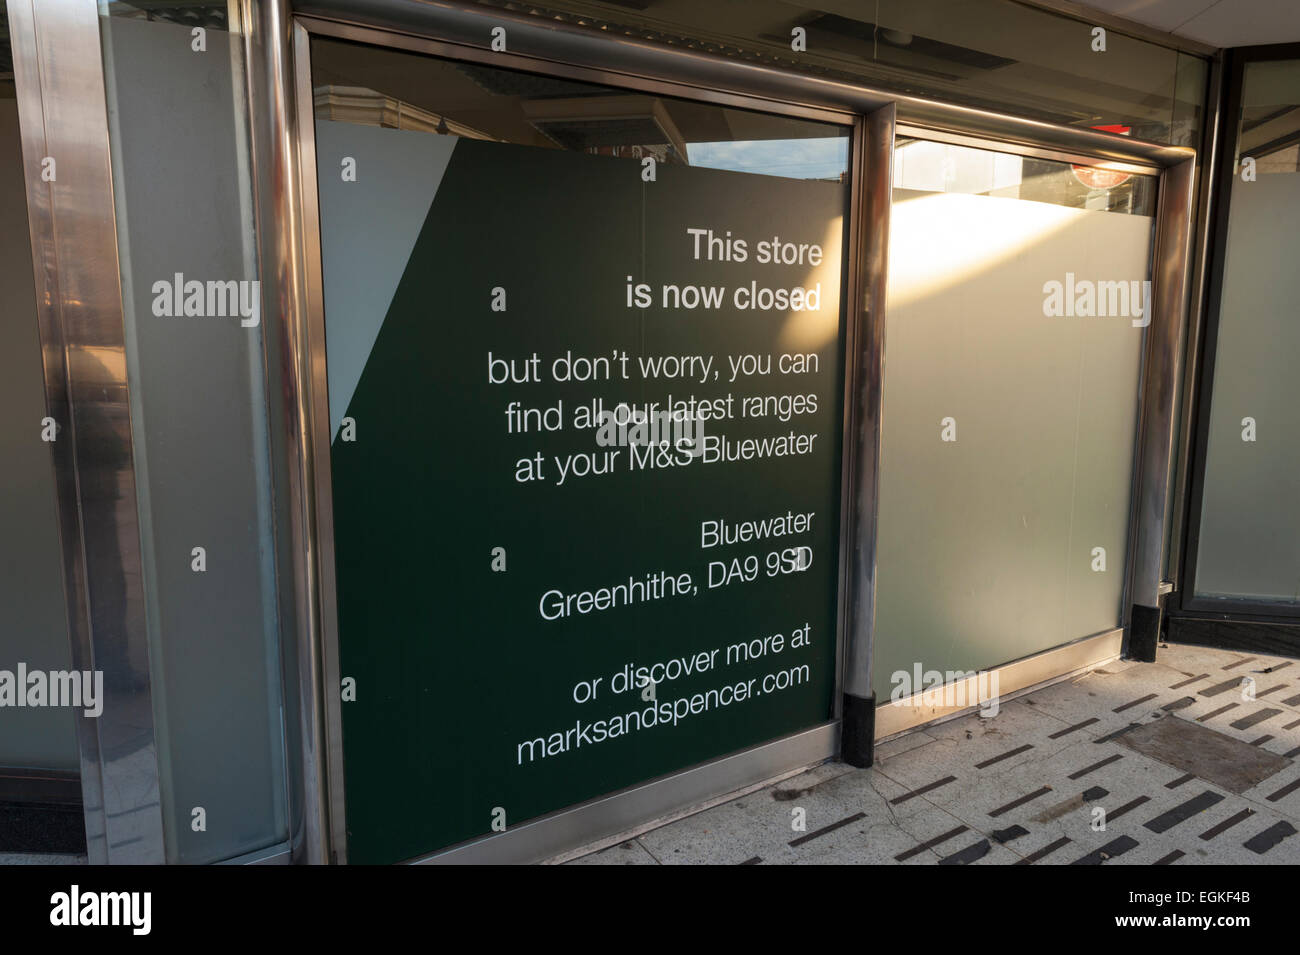 Closed down Marks and spencer store in New Road Gravesend. - Stock Image